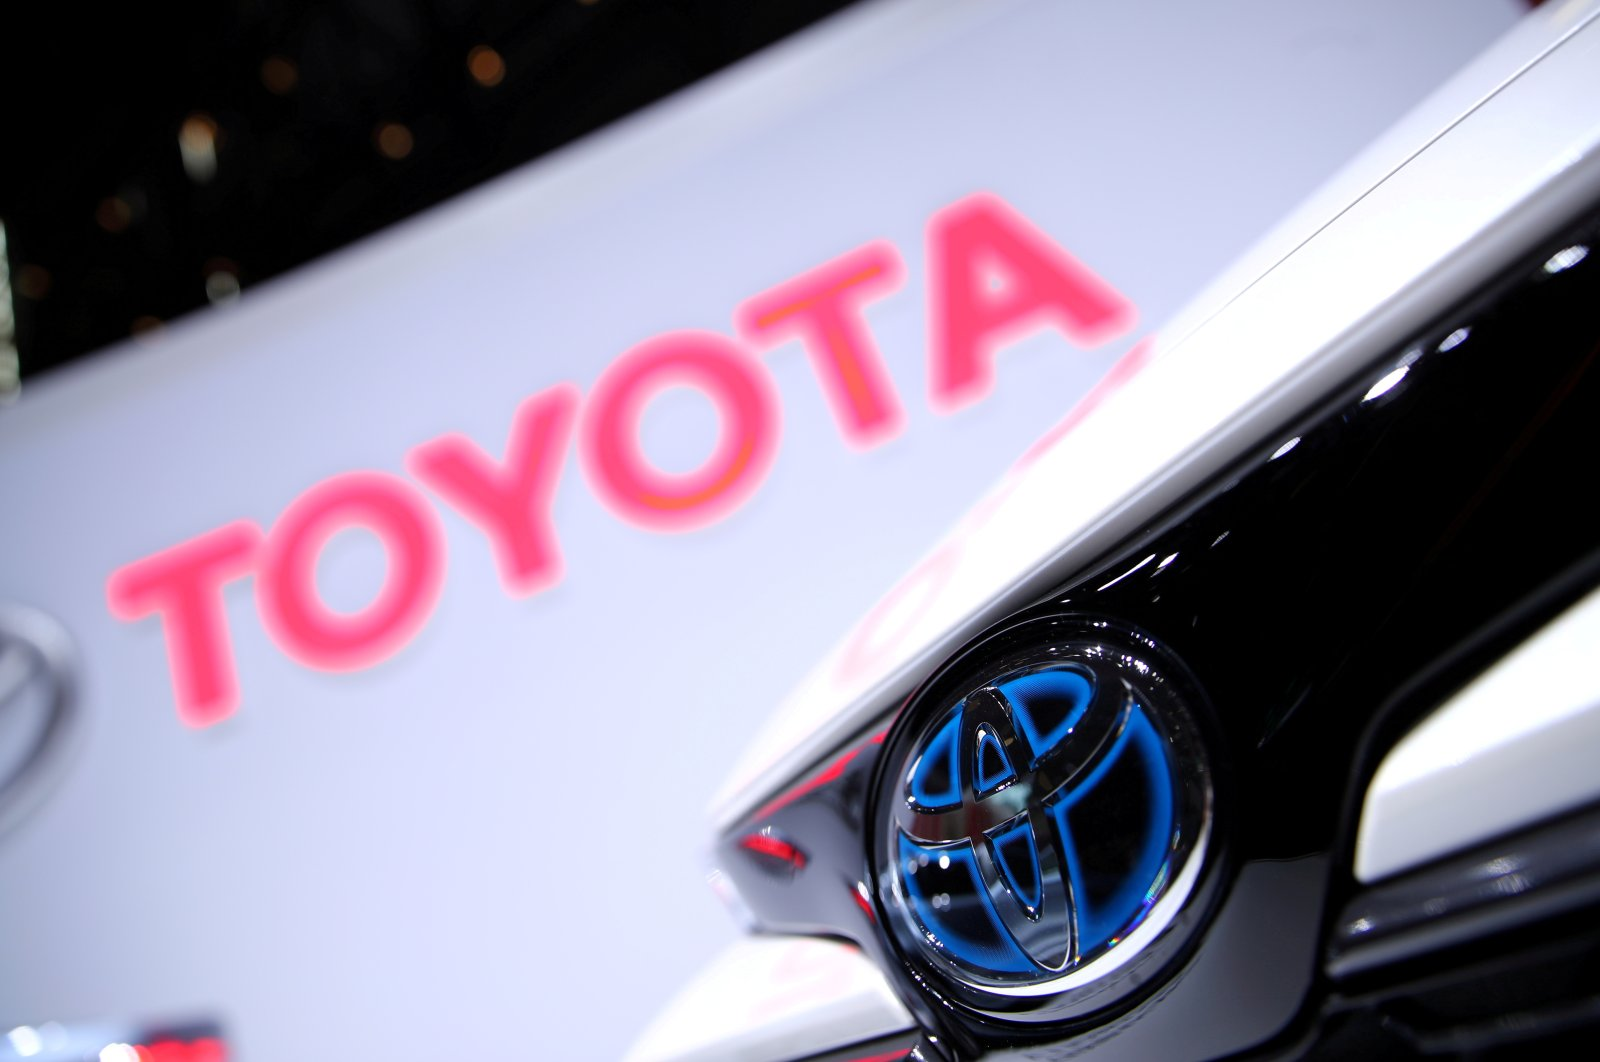 The Toyota logo is seen on a Corolla model at the 89th Geneva International Motor Show in Geneva, Switzerland, March 5, 2019. (Reuters Photo)